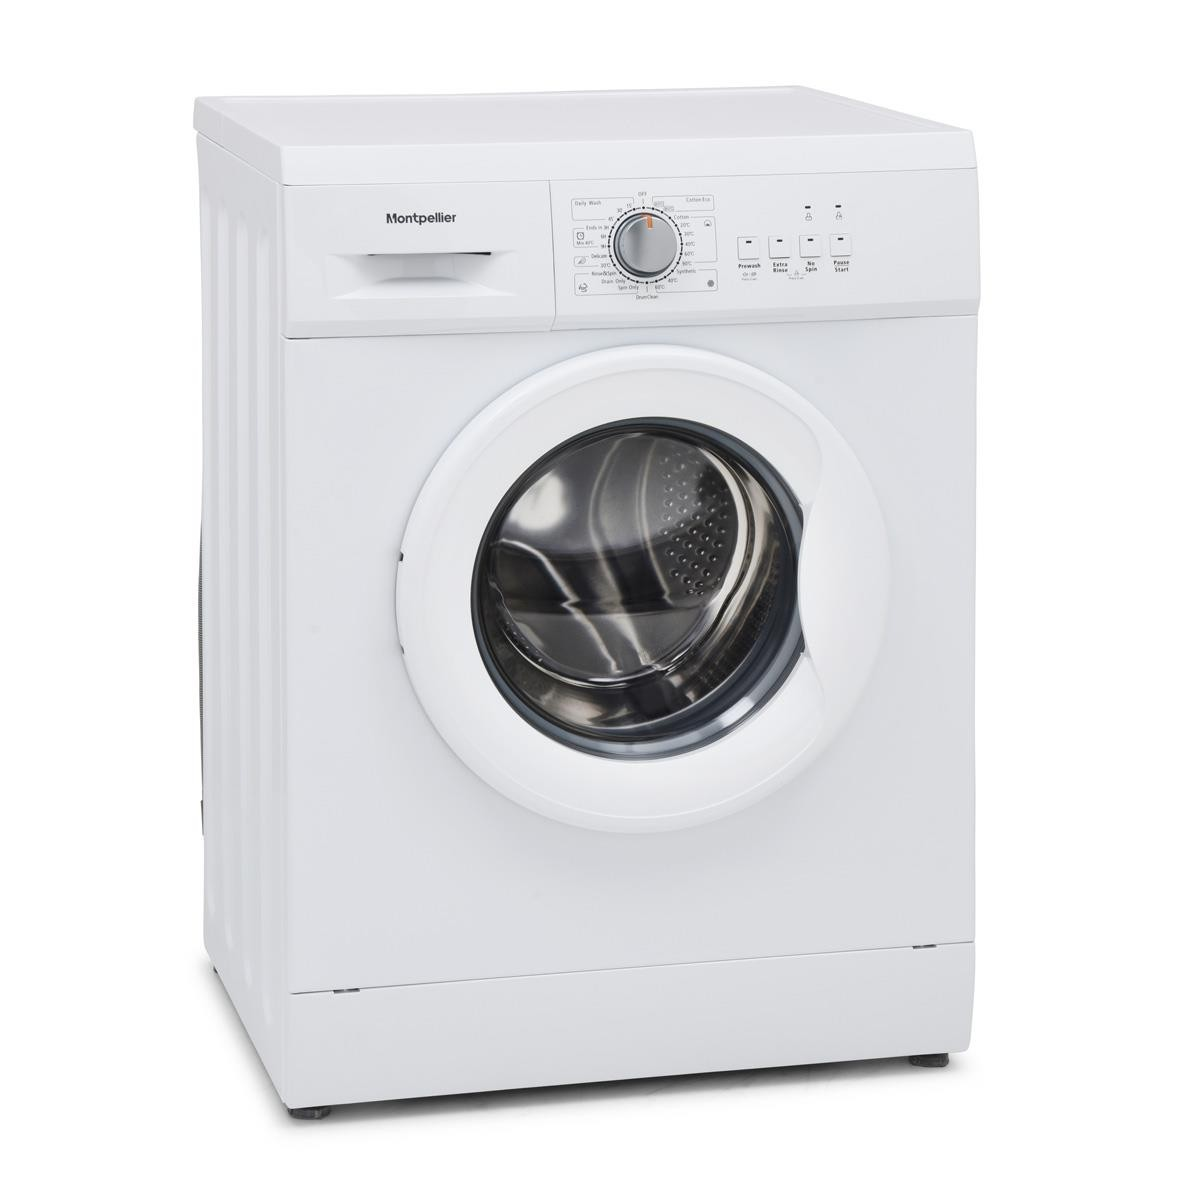 Montpellier MW6101W 6kg 1000rpm Washing Machine